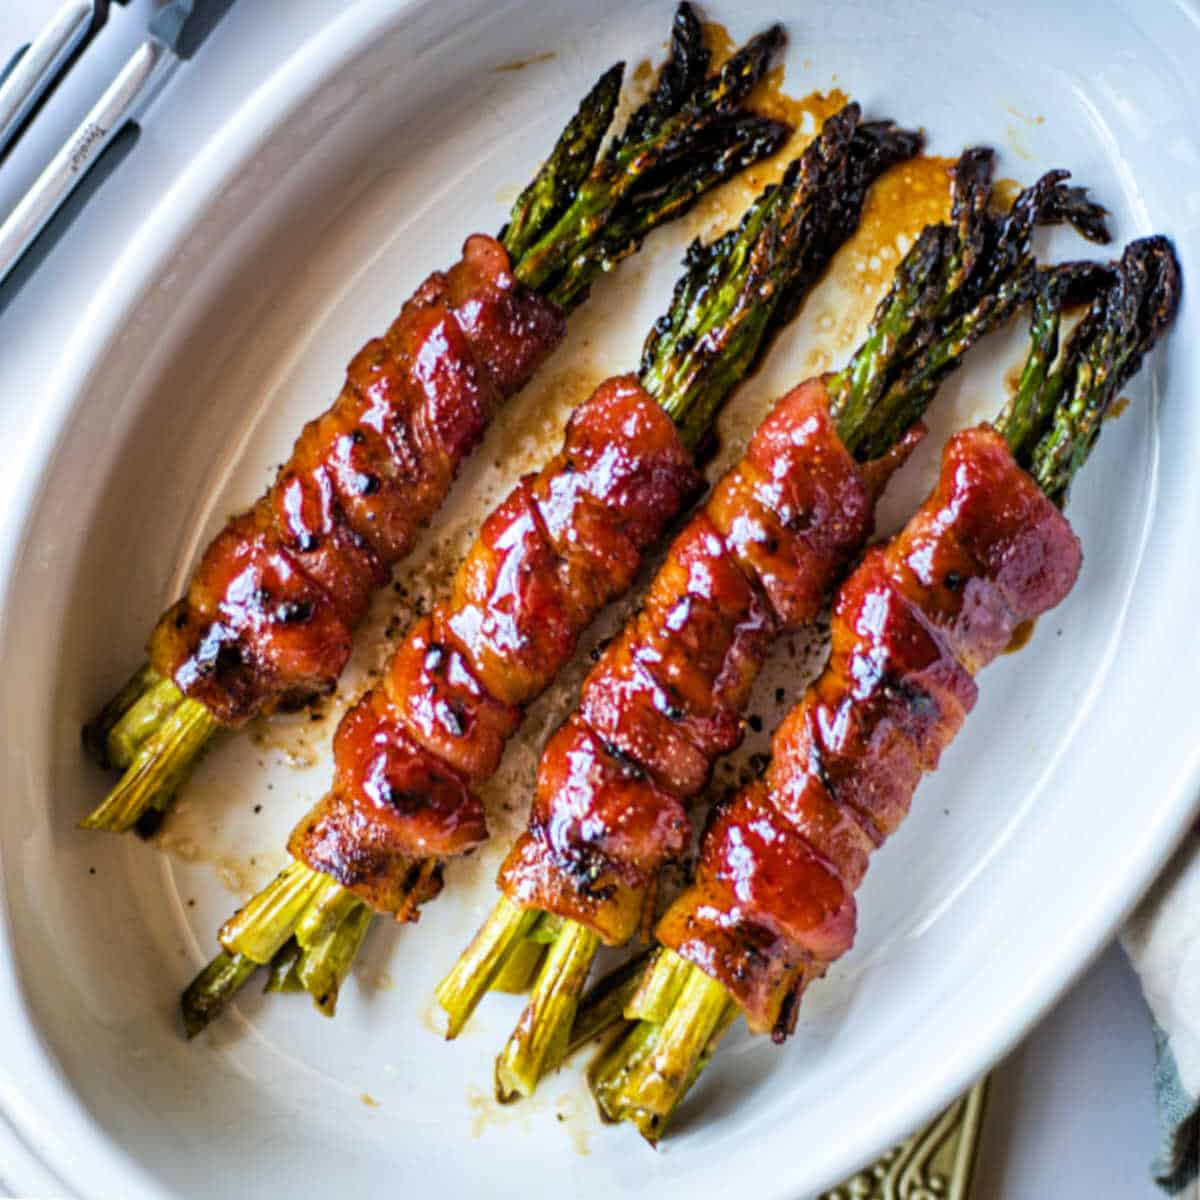 bacon wrapped asparagus bundles in a white baking dish